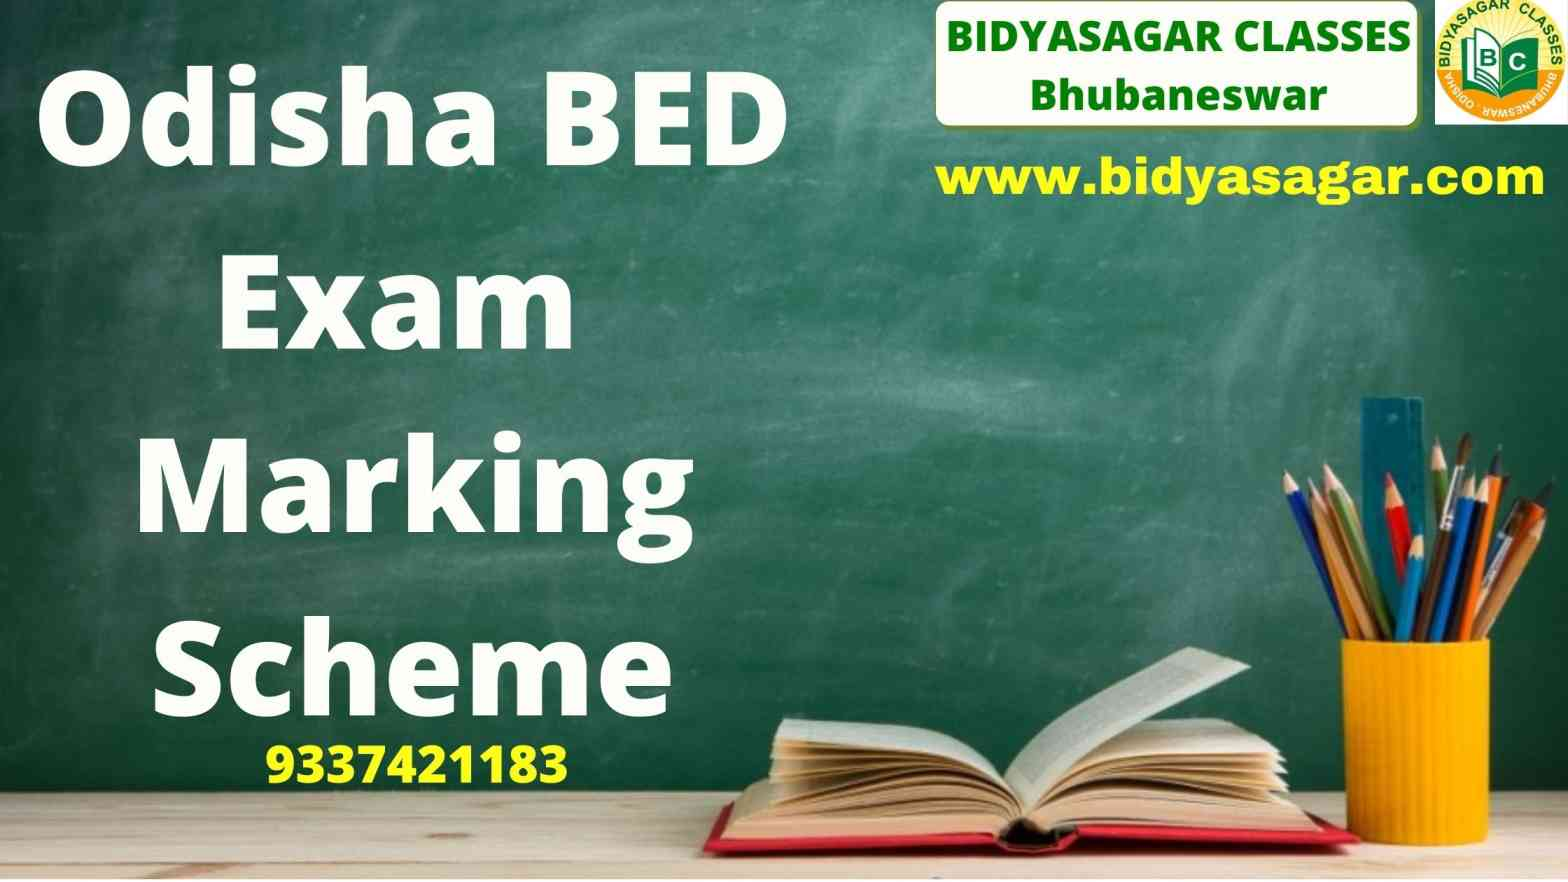 Odisha State B.Ed Entrance 2021 Exam Marking Scheme